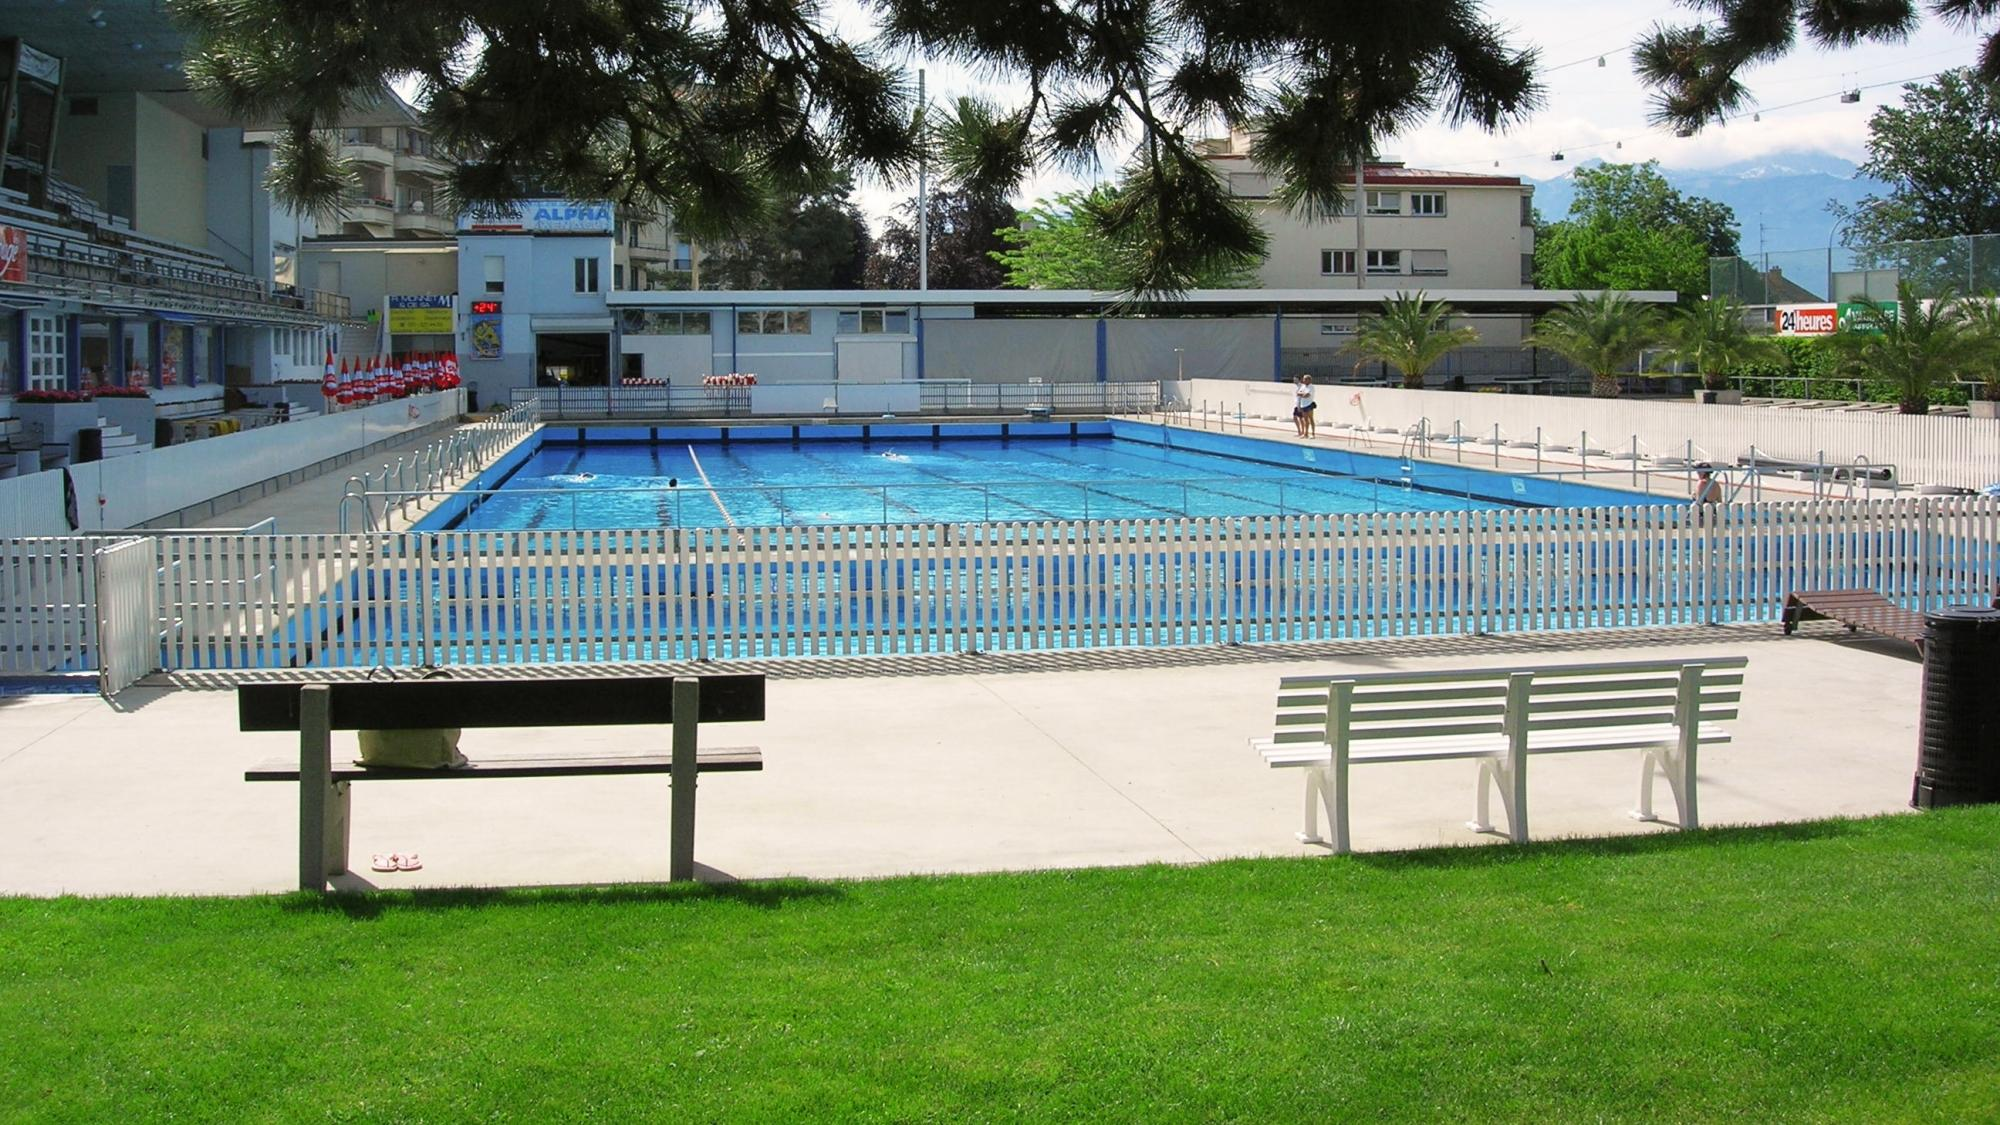 Montchoisi swimming pool